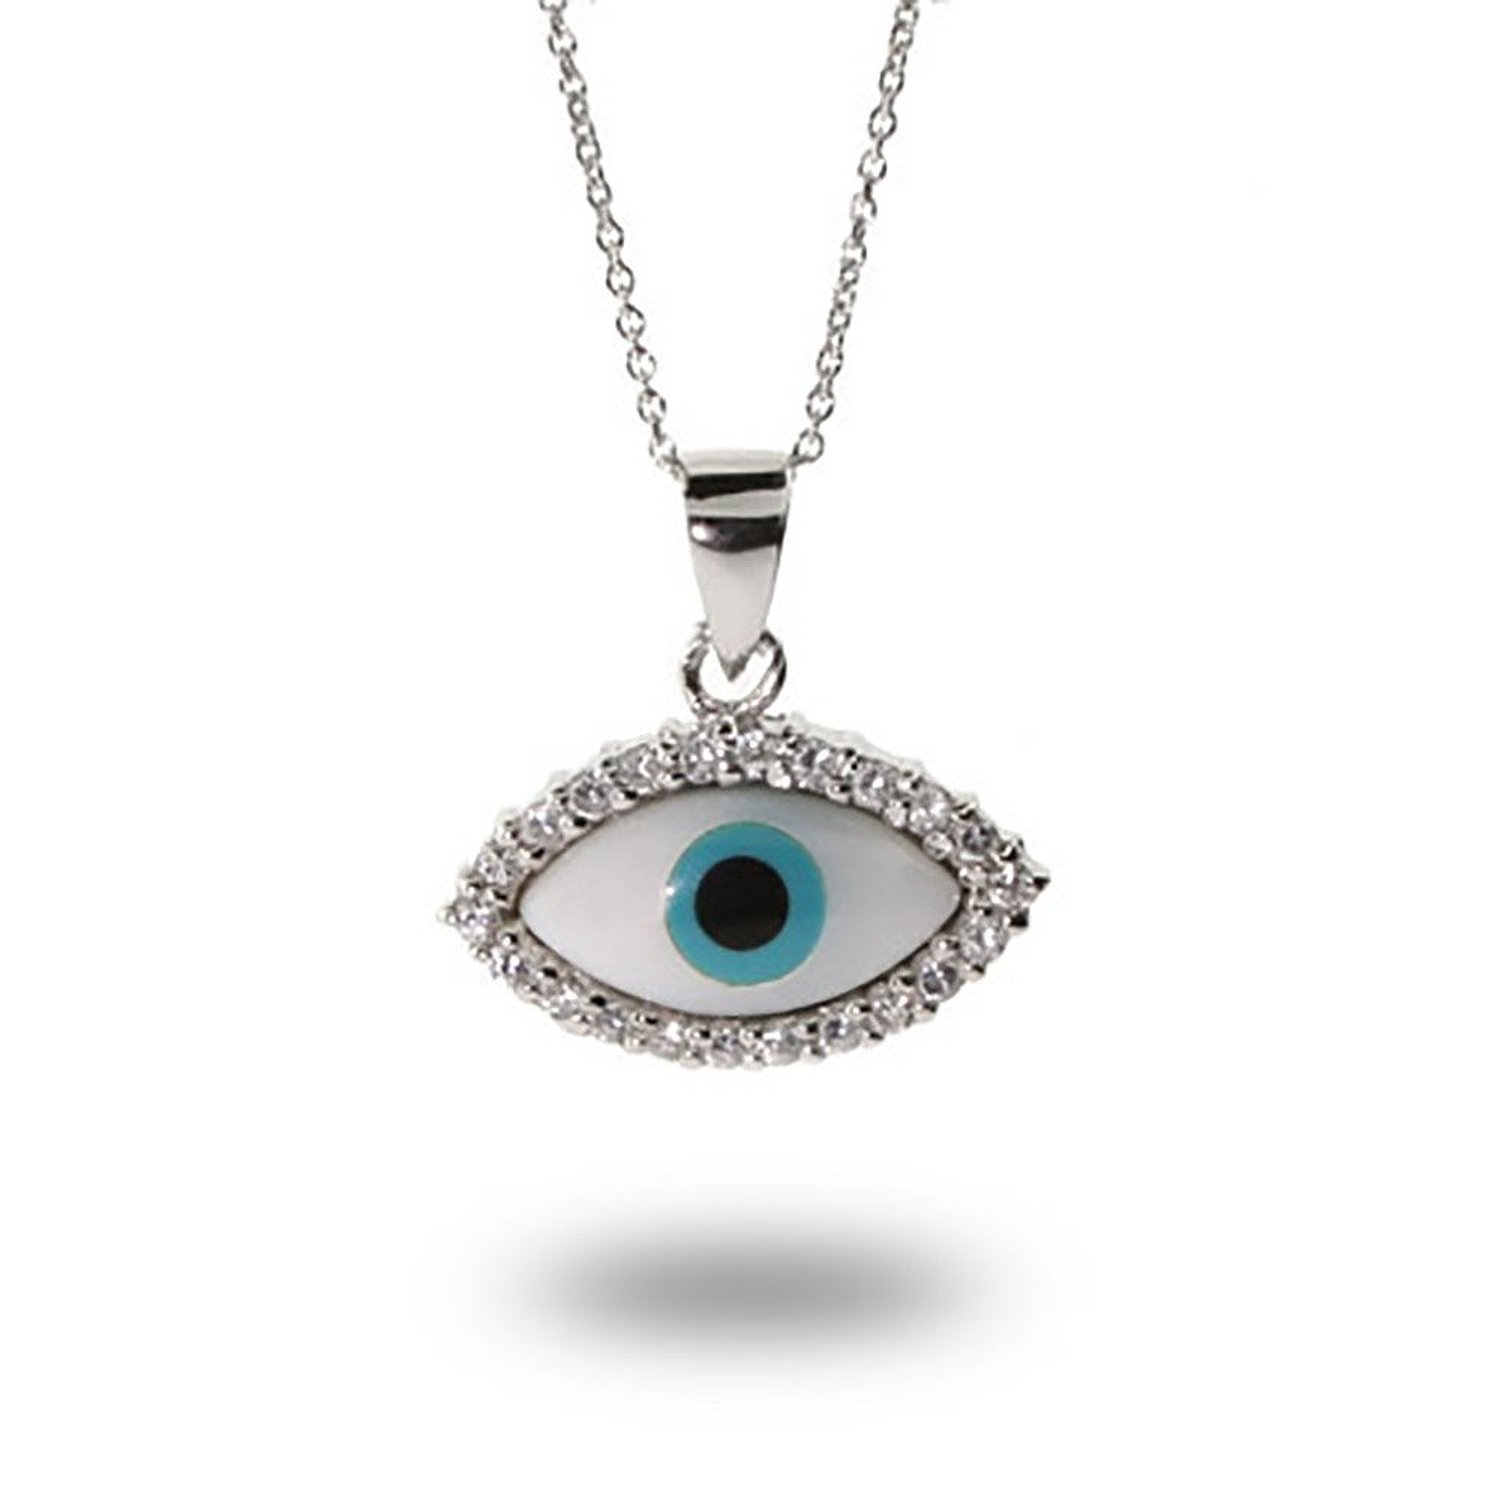 Amazon.com: Sterling Silver Evil Eye Protection Pendant: Necklaces: Jewelry